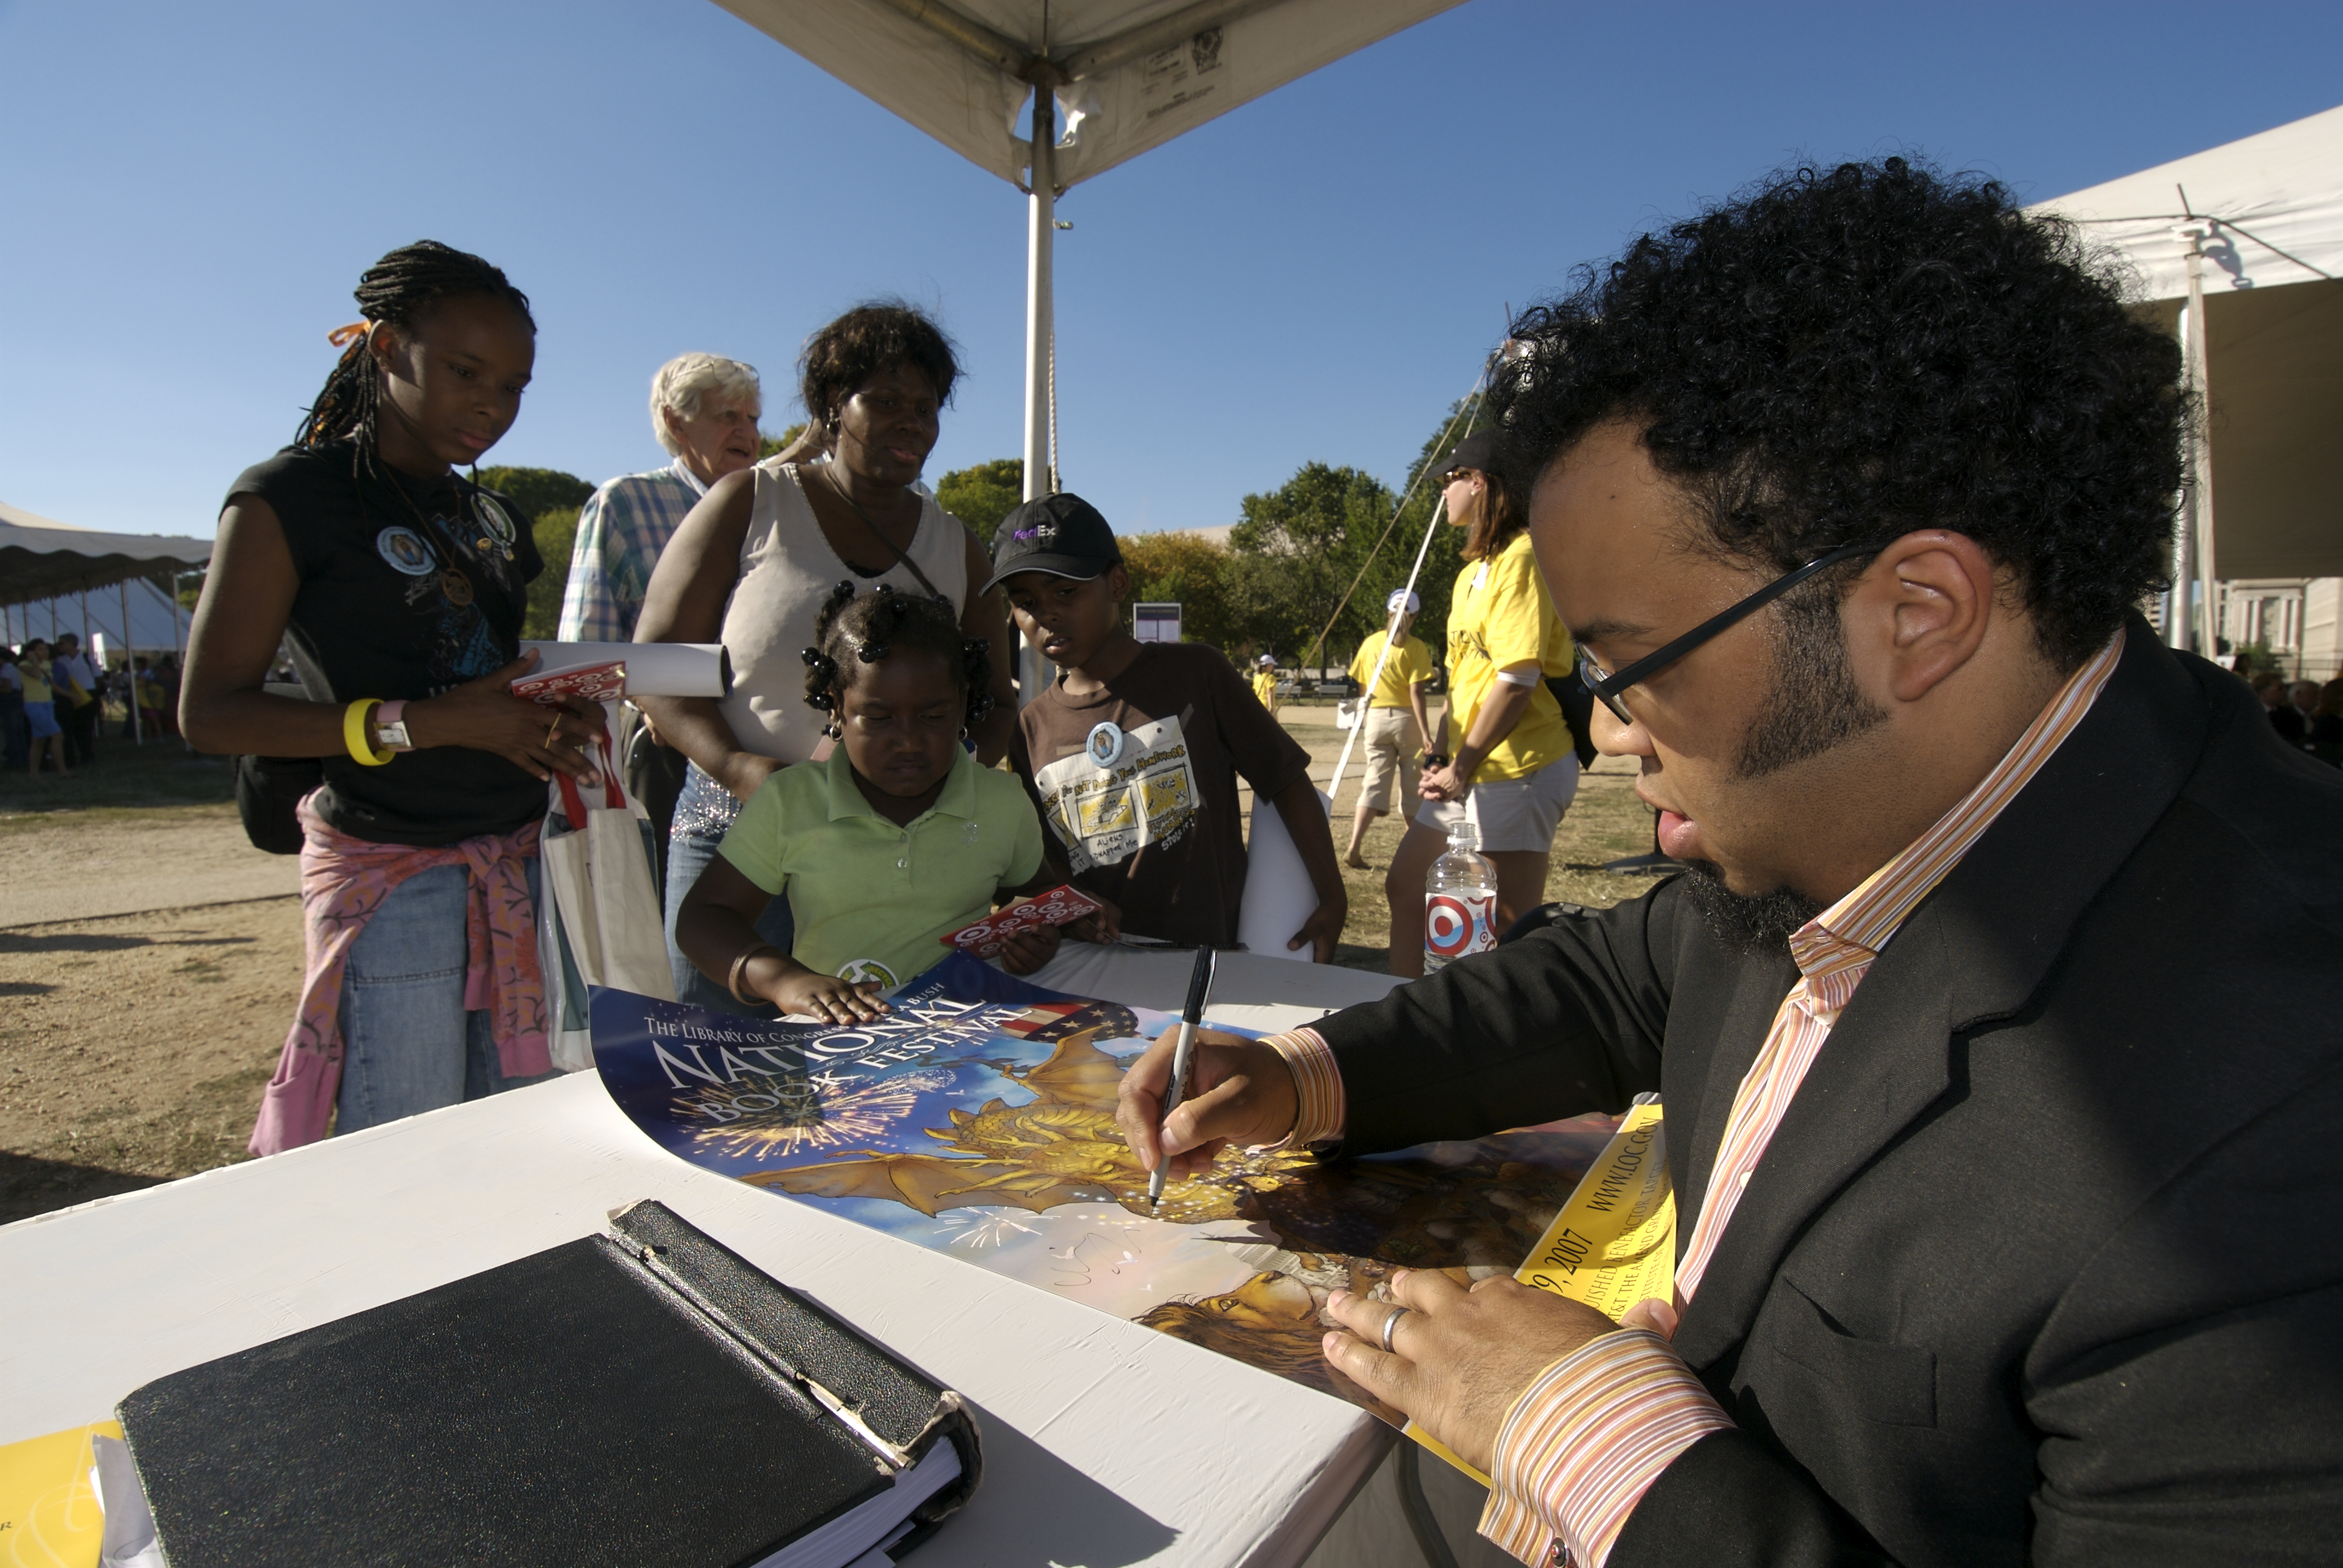 Kevin Young signing a poster with kids standing around him.